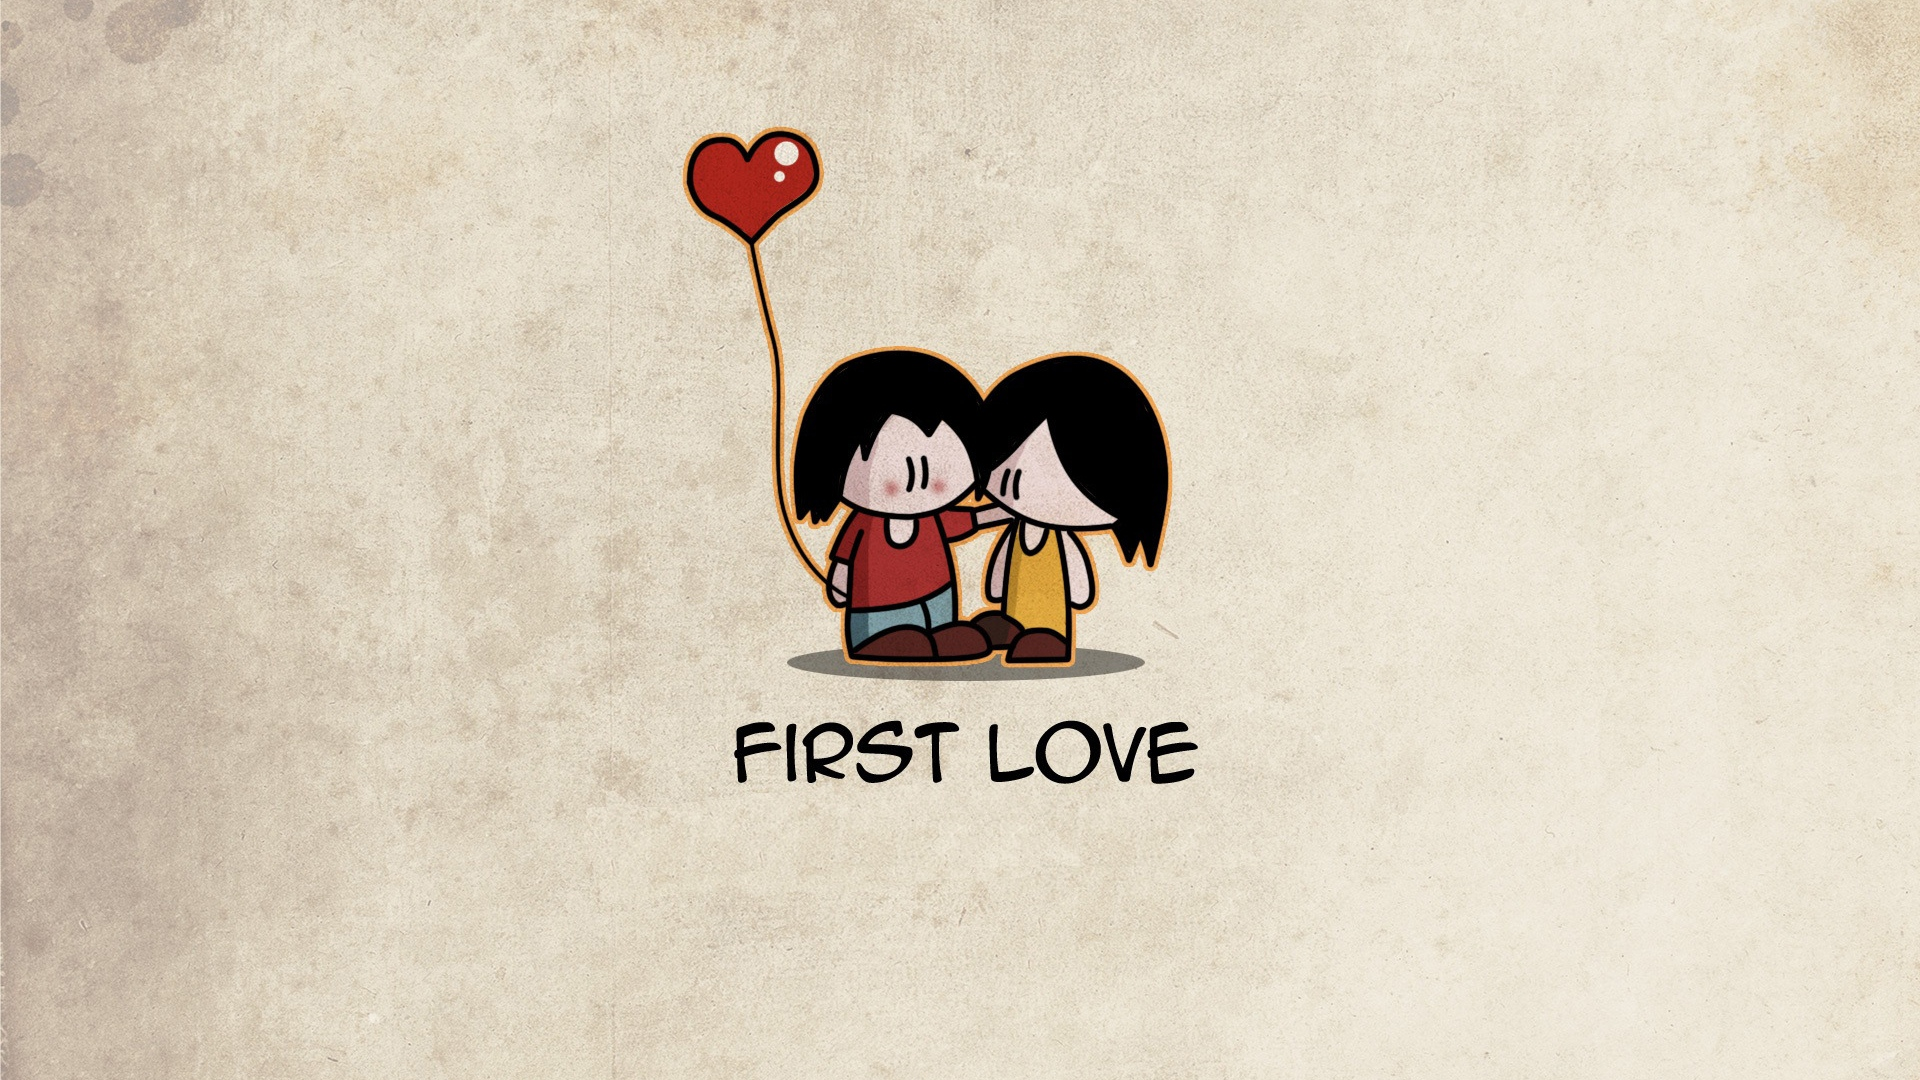 Good Wallpaper Love Lover - love_couple_lovers_first_ball_7319_1920x1080  Collection_933090.jpg